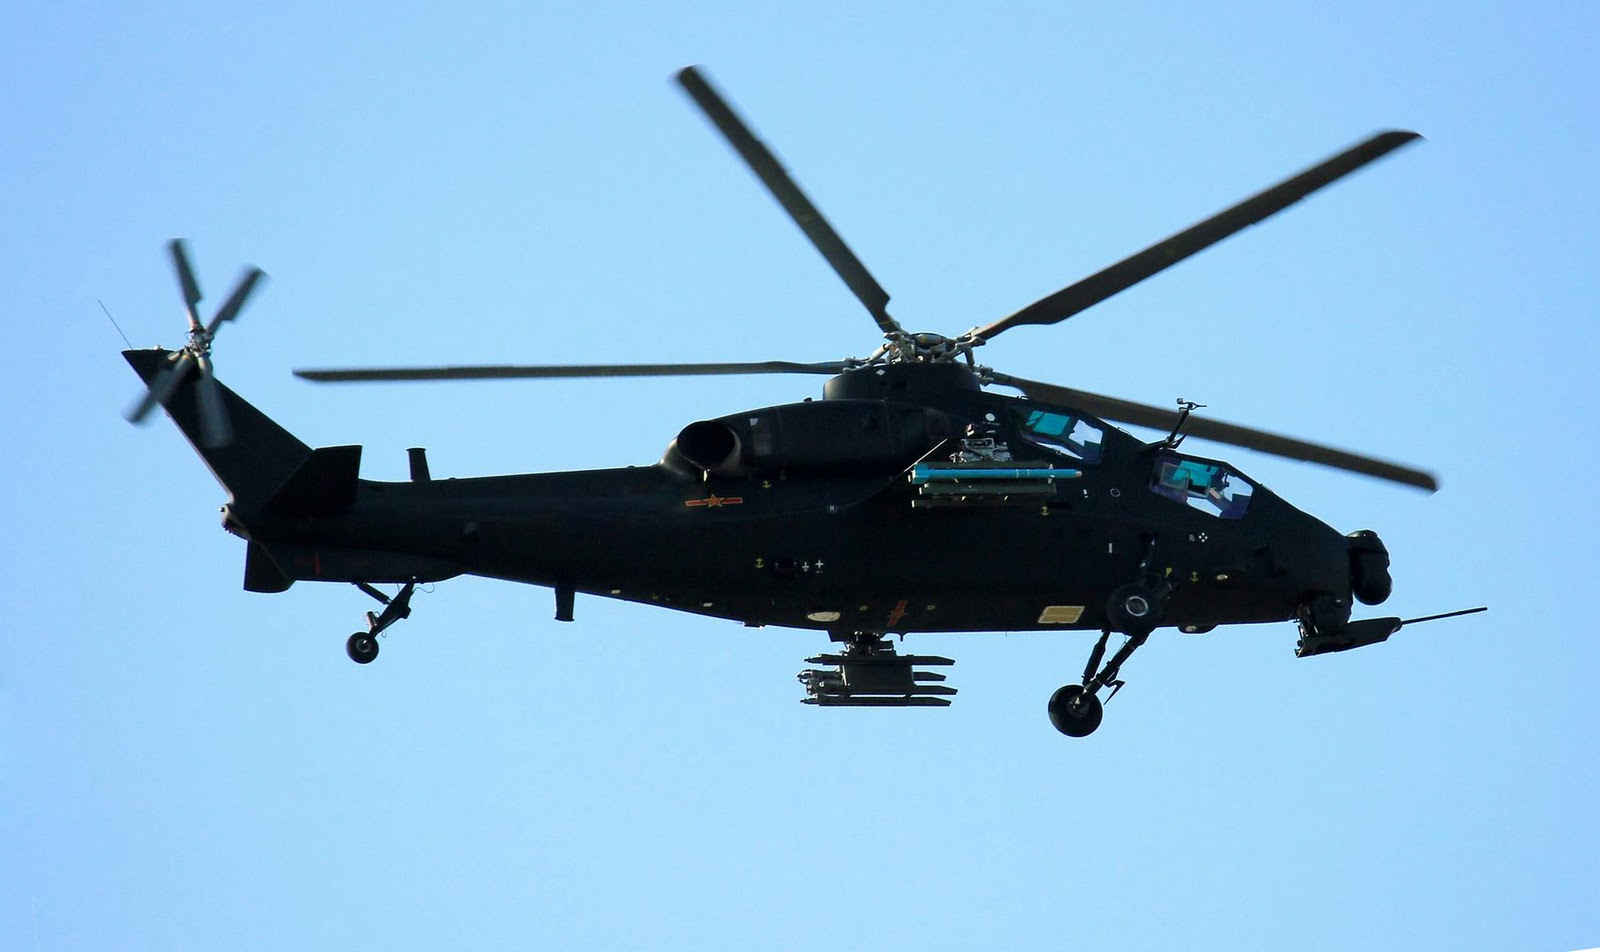 Armed & Dangerous: Chinese Z-10 Attack Helicopter ...